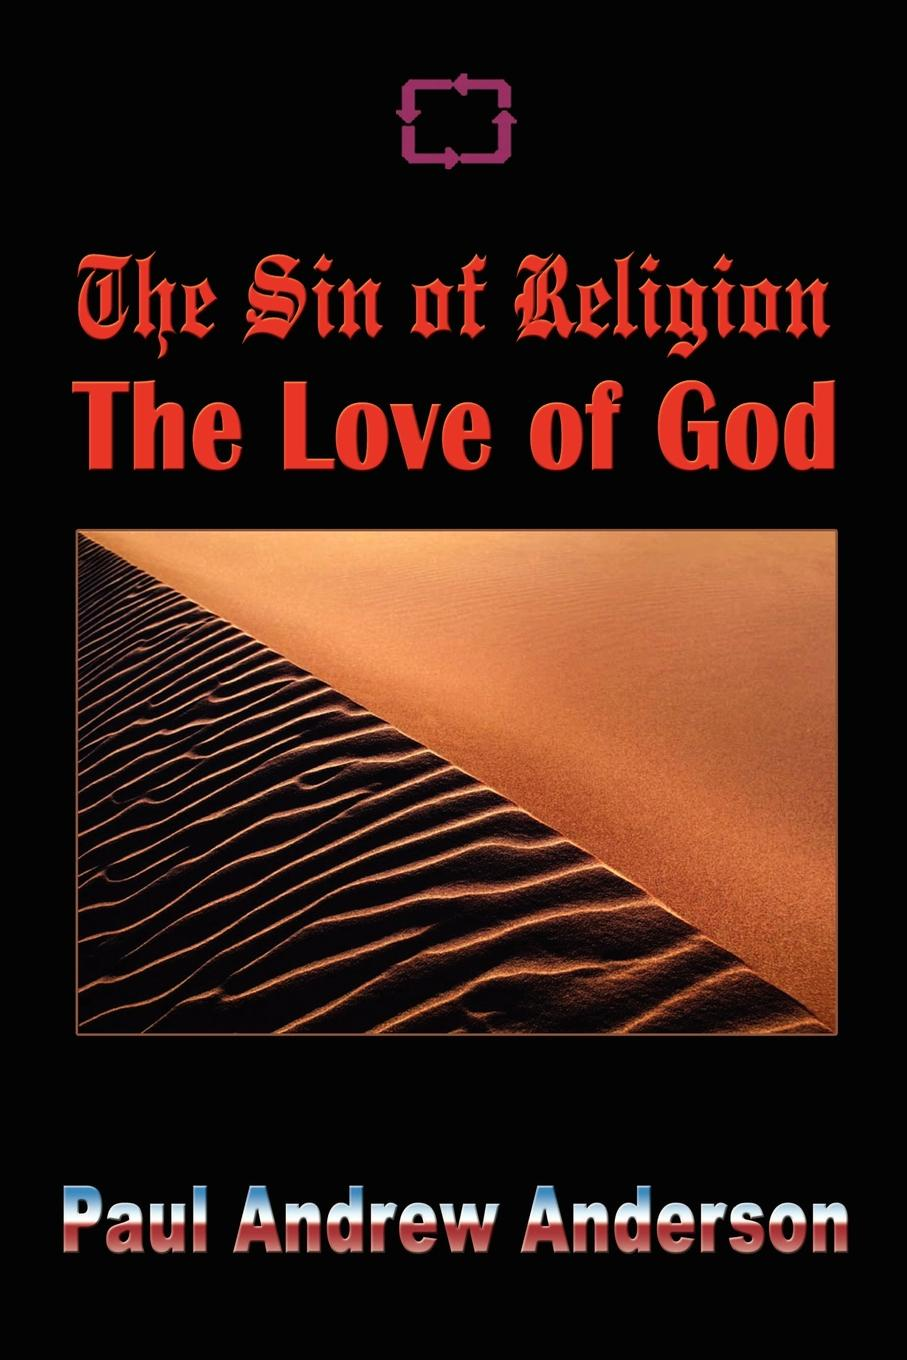 Paul Andrew Anderson The Sin of Religion The Love of God andrew lansdown gestures of love